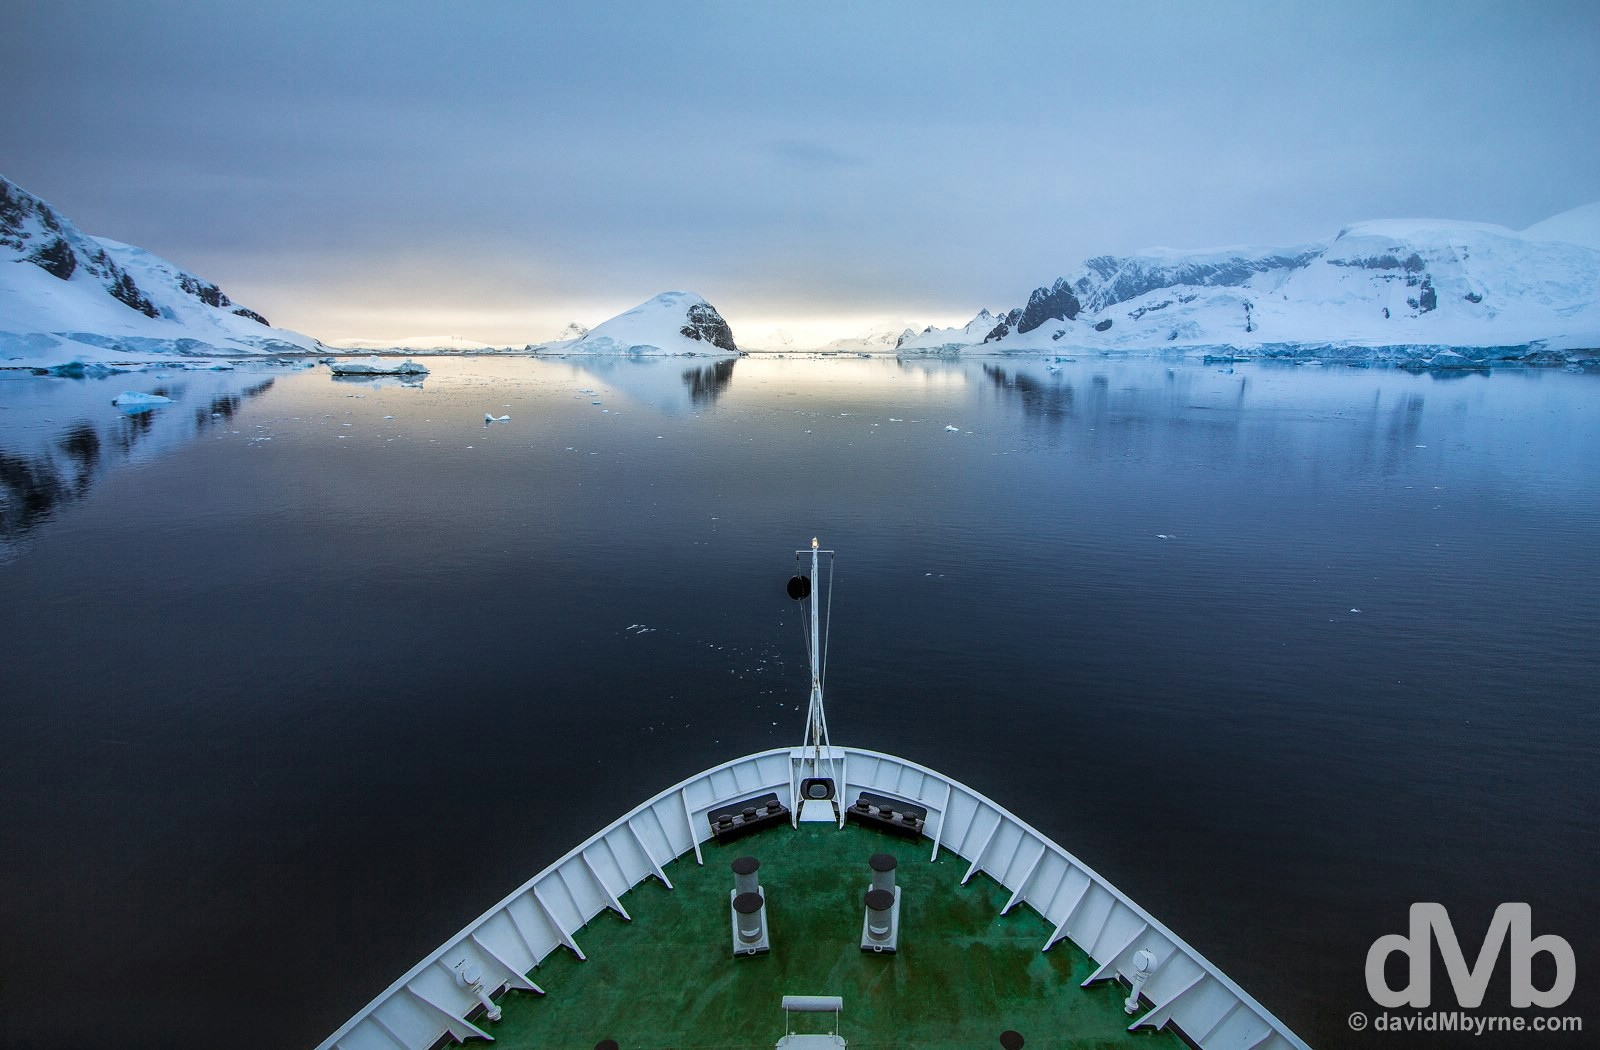 Early morning perfection in Paradise Harbour, Antarctica. December 2, 2015.